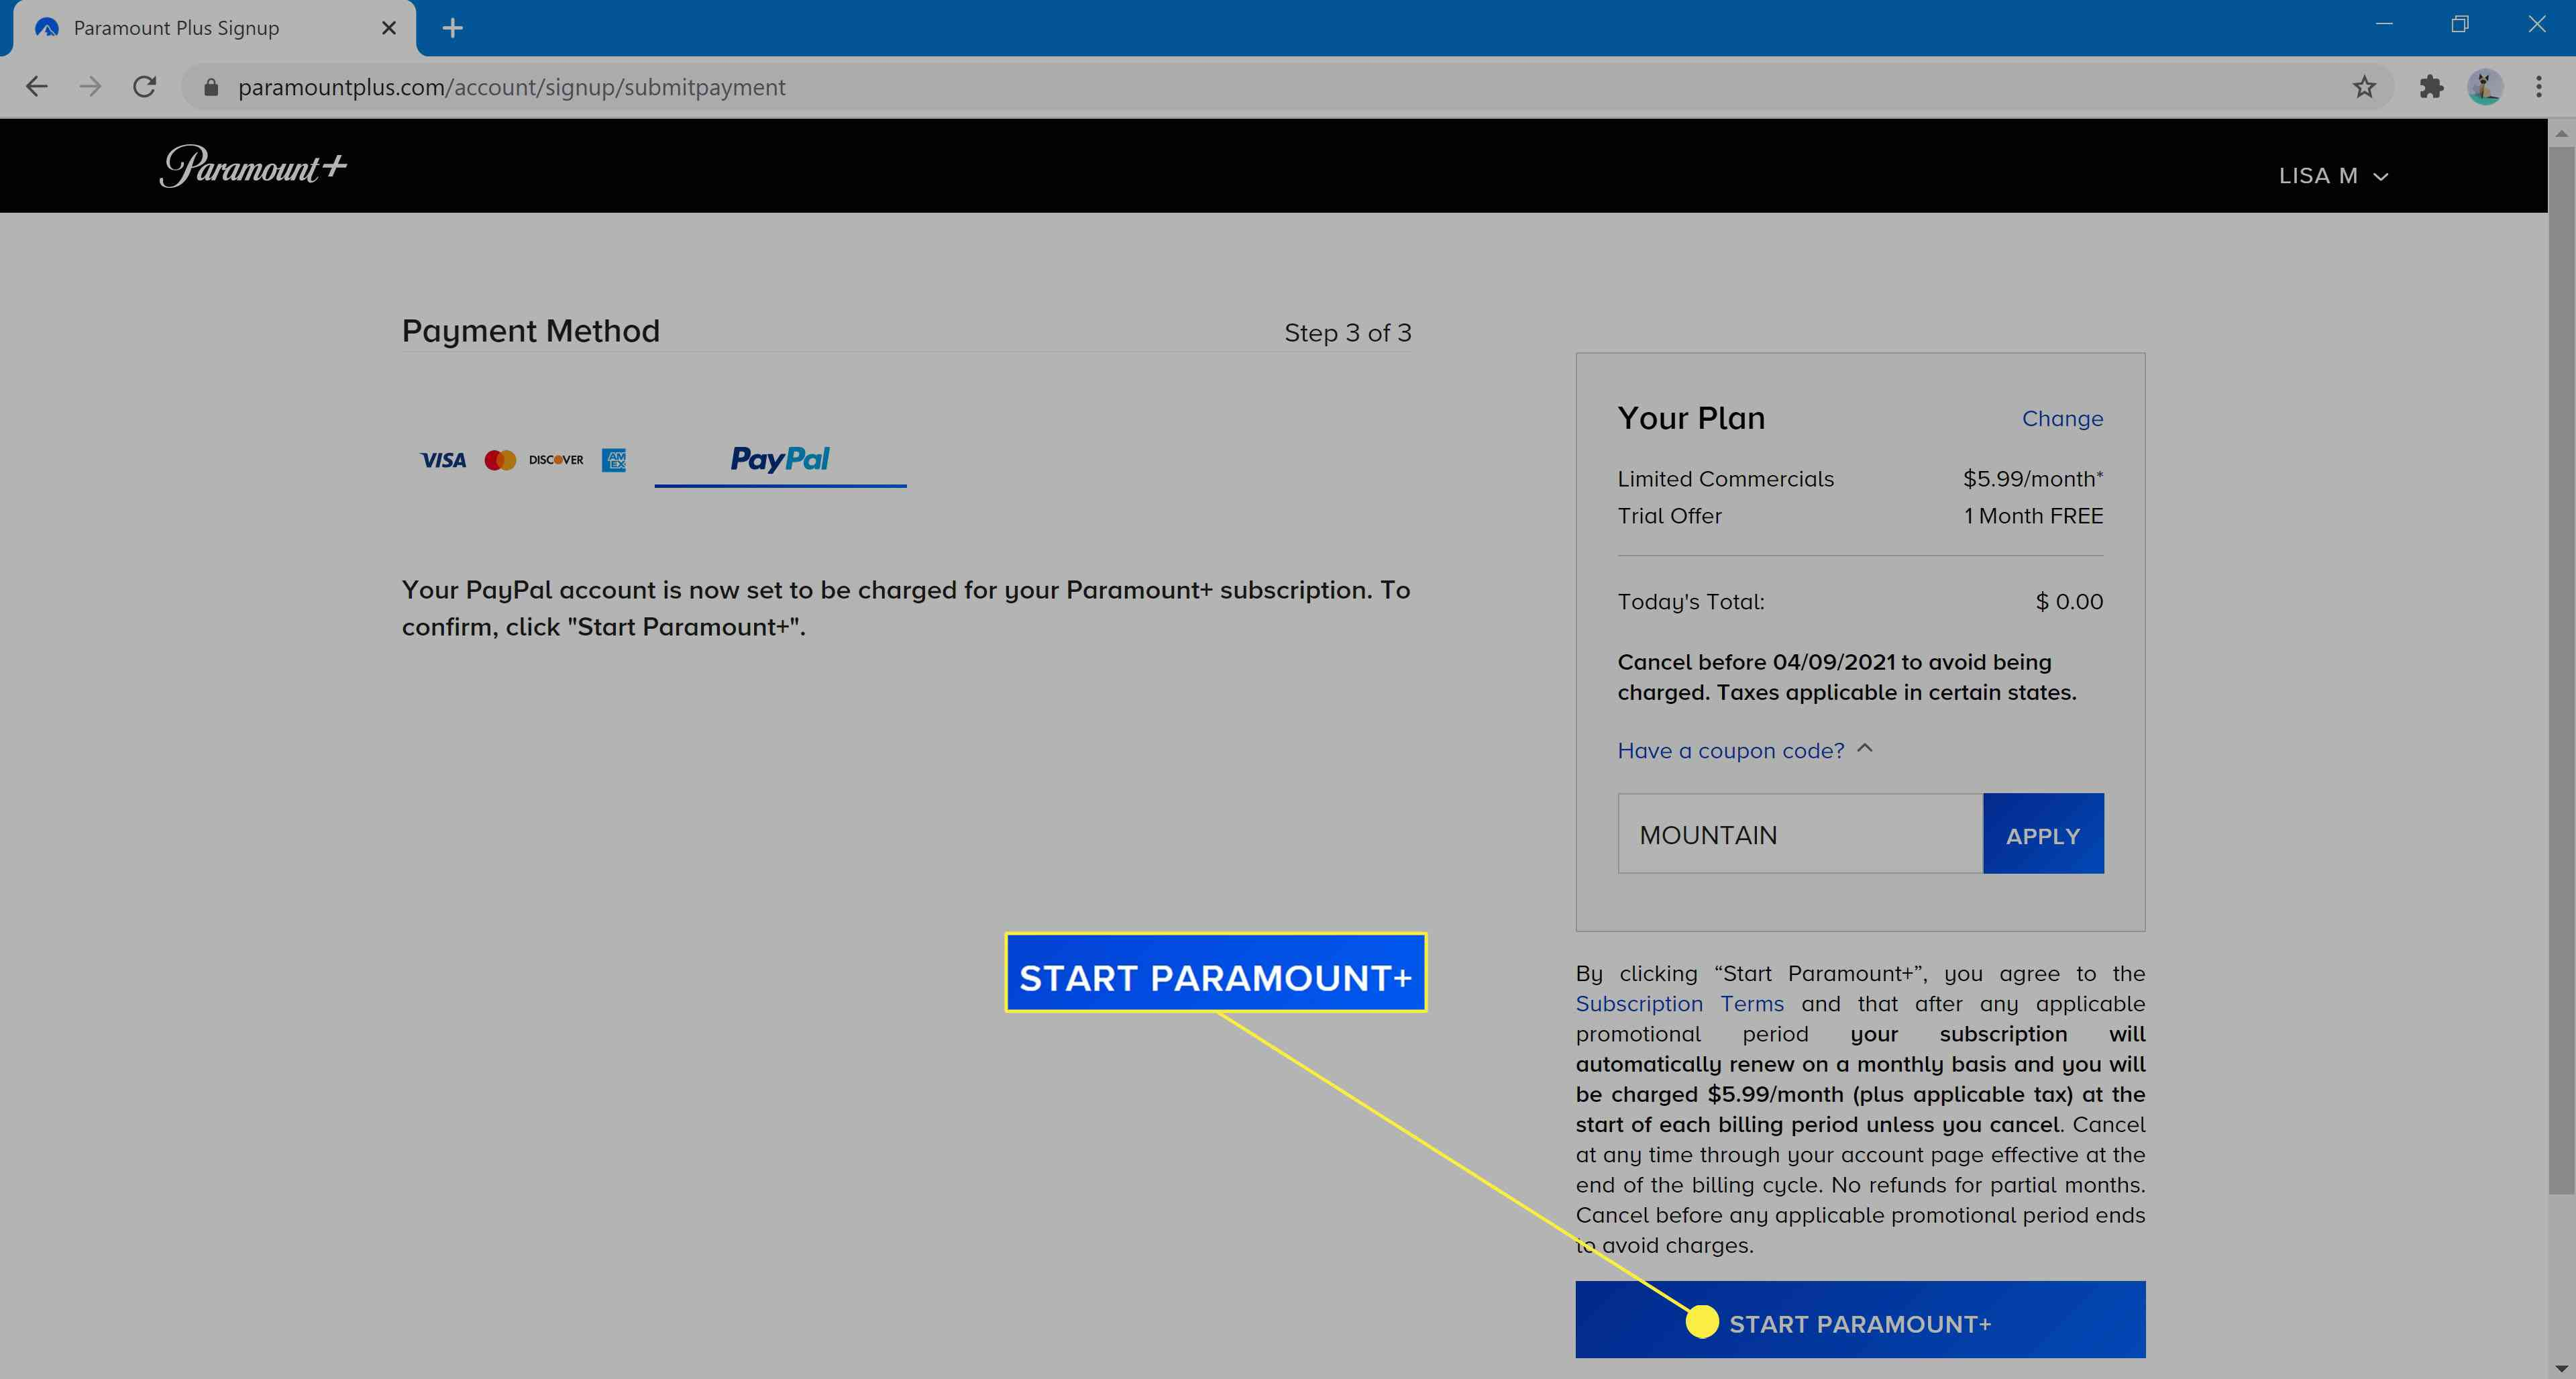 Finishing payment and activating Paramount+ account.